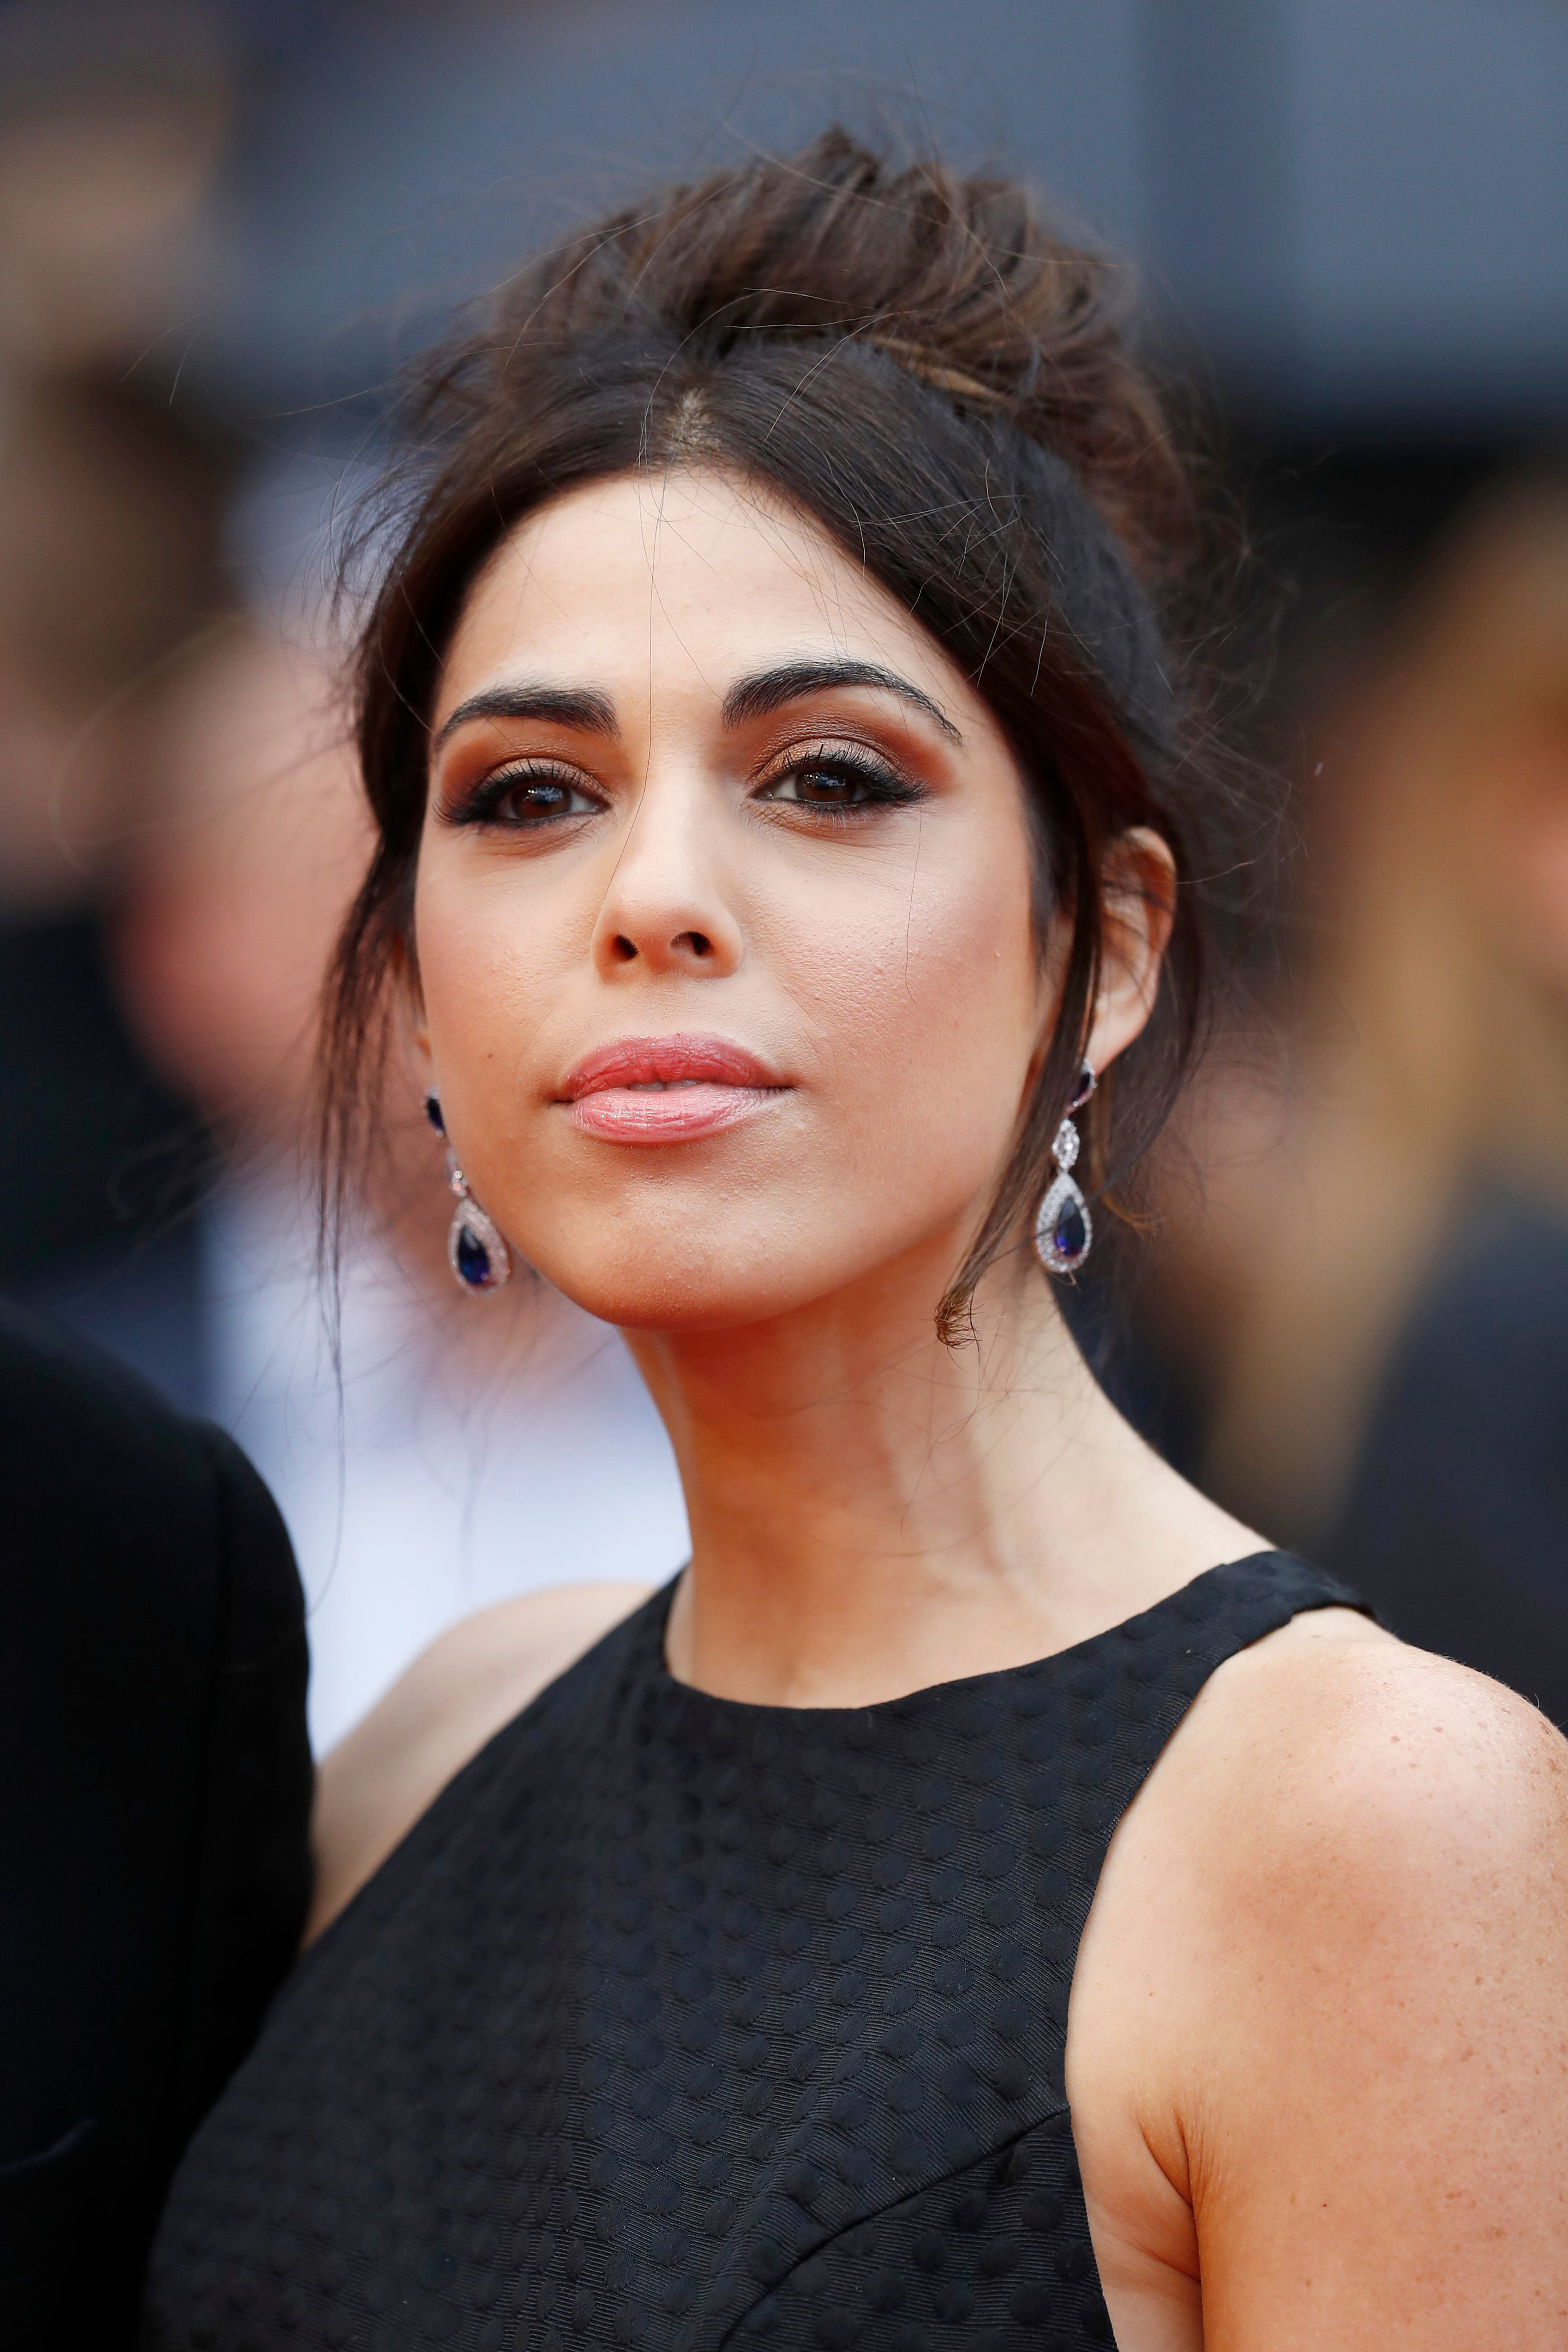 Daniella Tarantino at the the 72nd annual Cannes Film Festival in 2019 in Cannes, France | Source: Getty Images